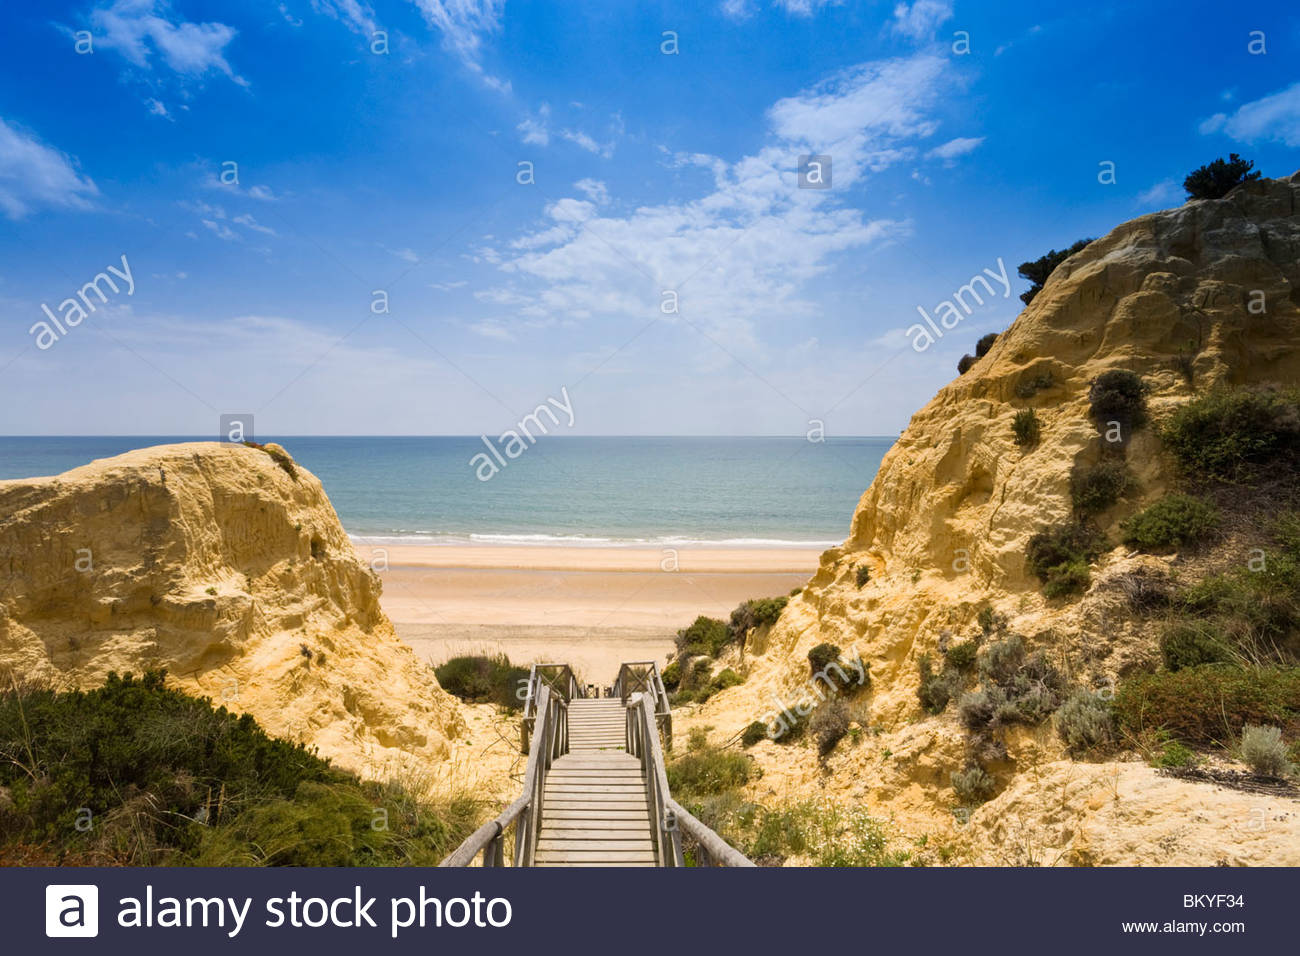 Mazagón, Playa de Mazagón, steps from hotel Parador de Mazagón to the beach, Province Huelva, Andalucia, - Stock Image